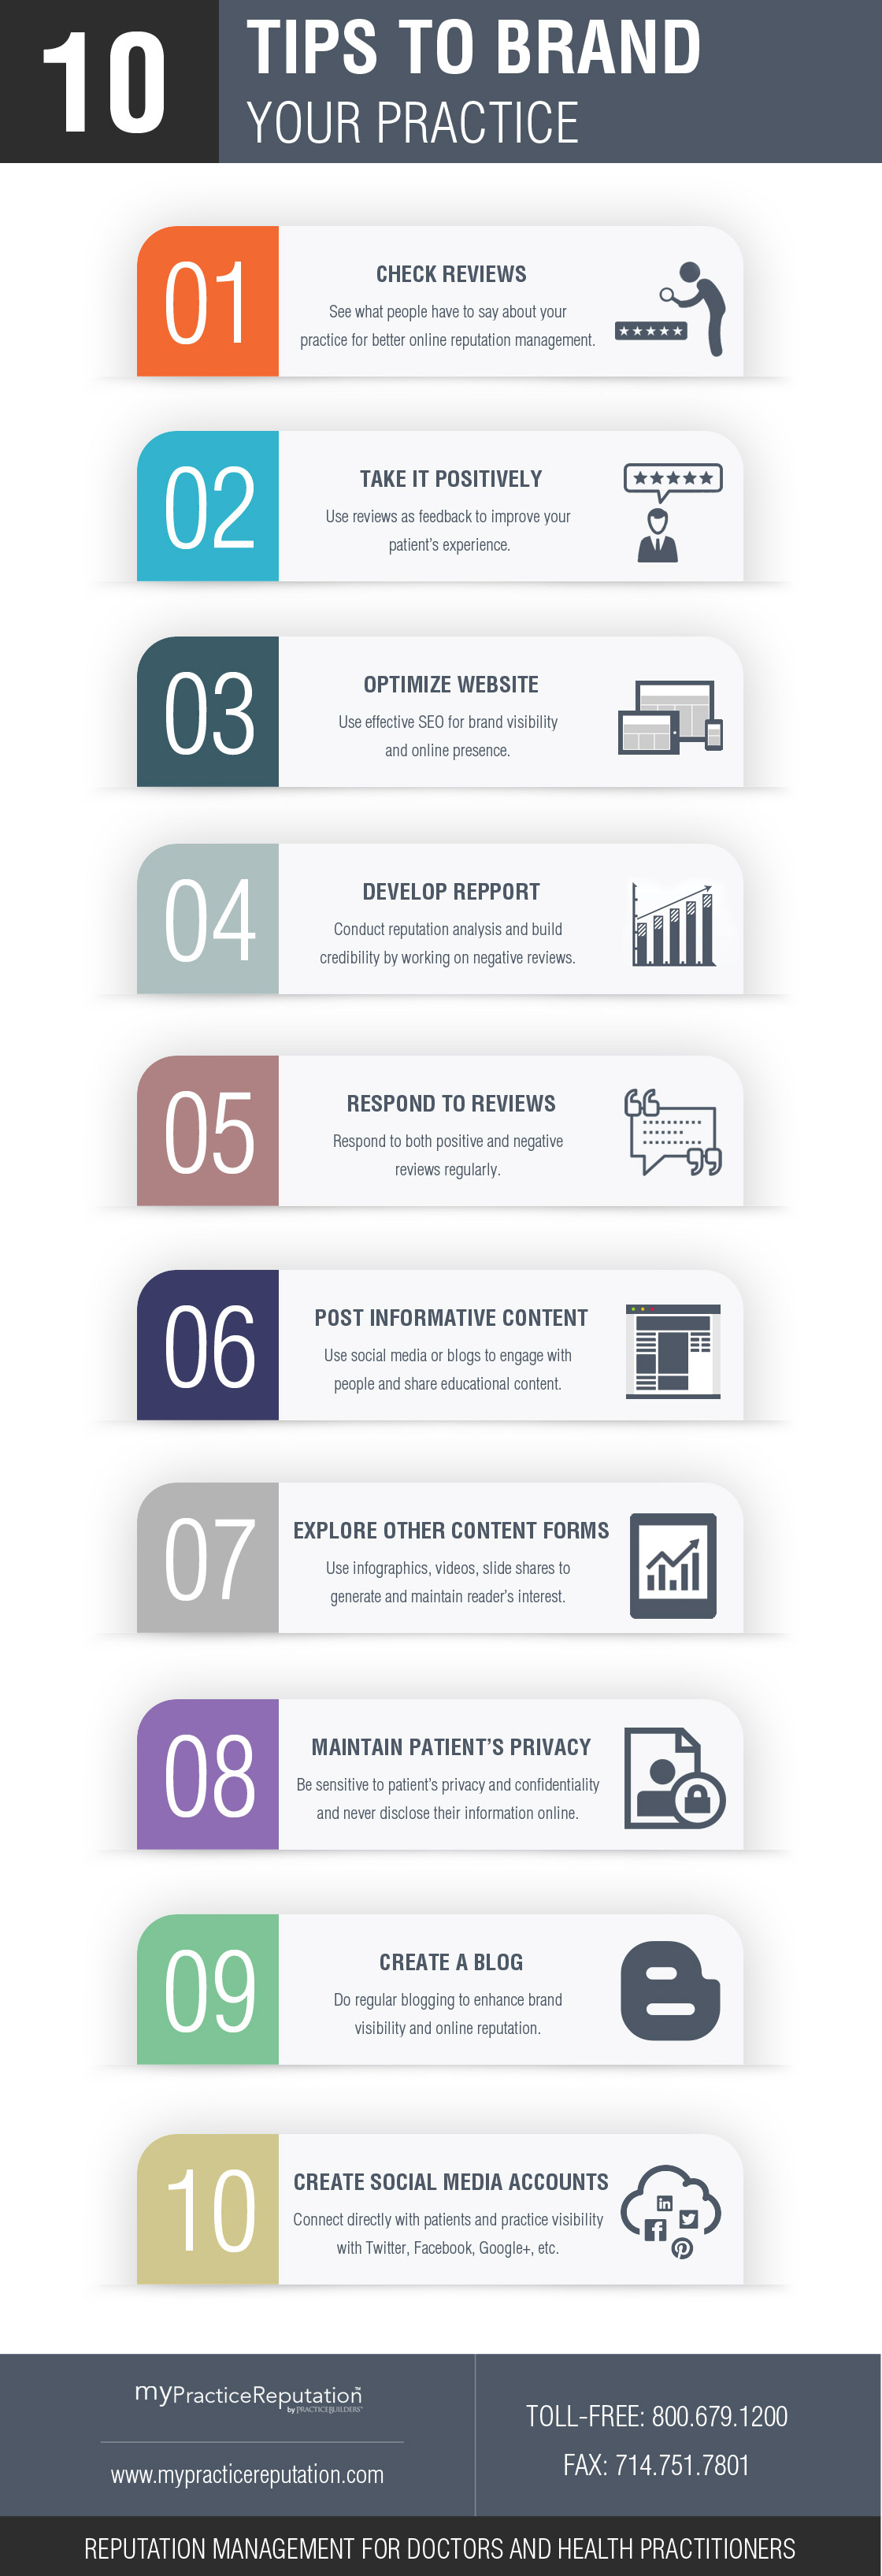 10tips to brand